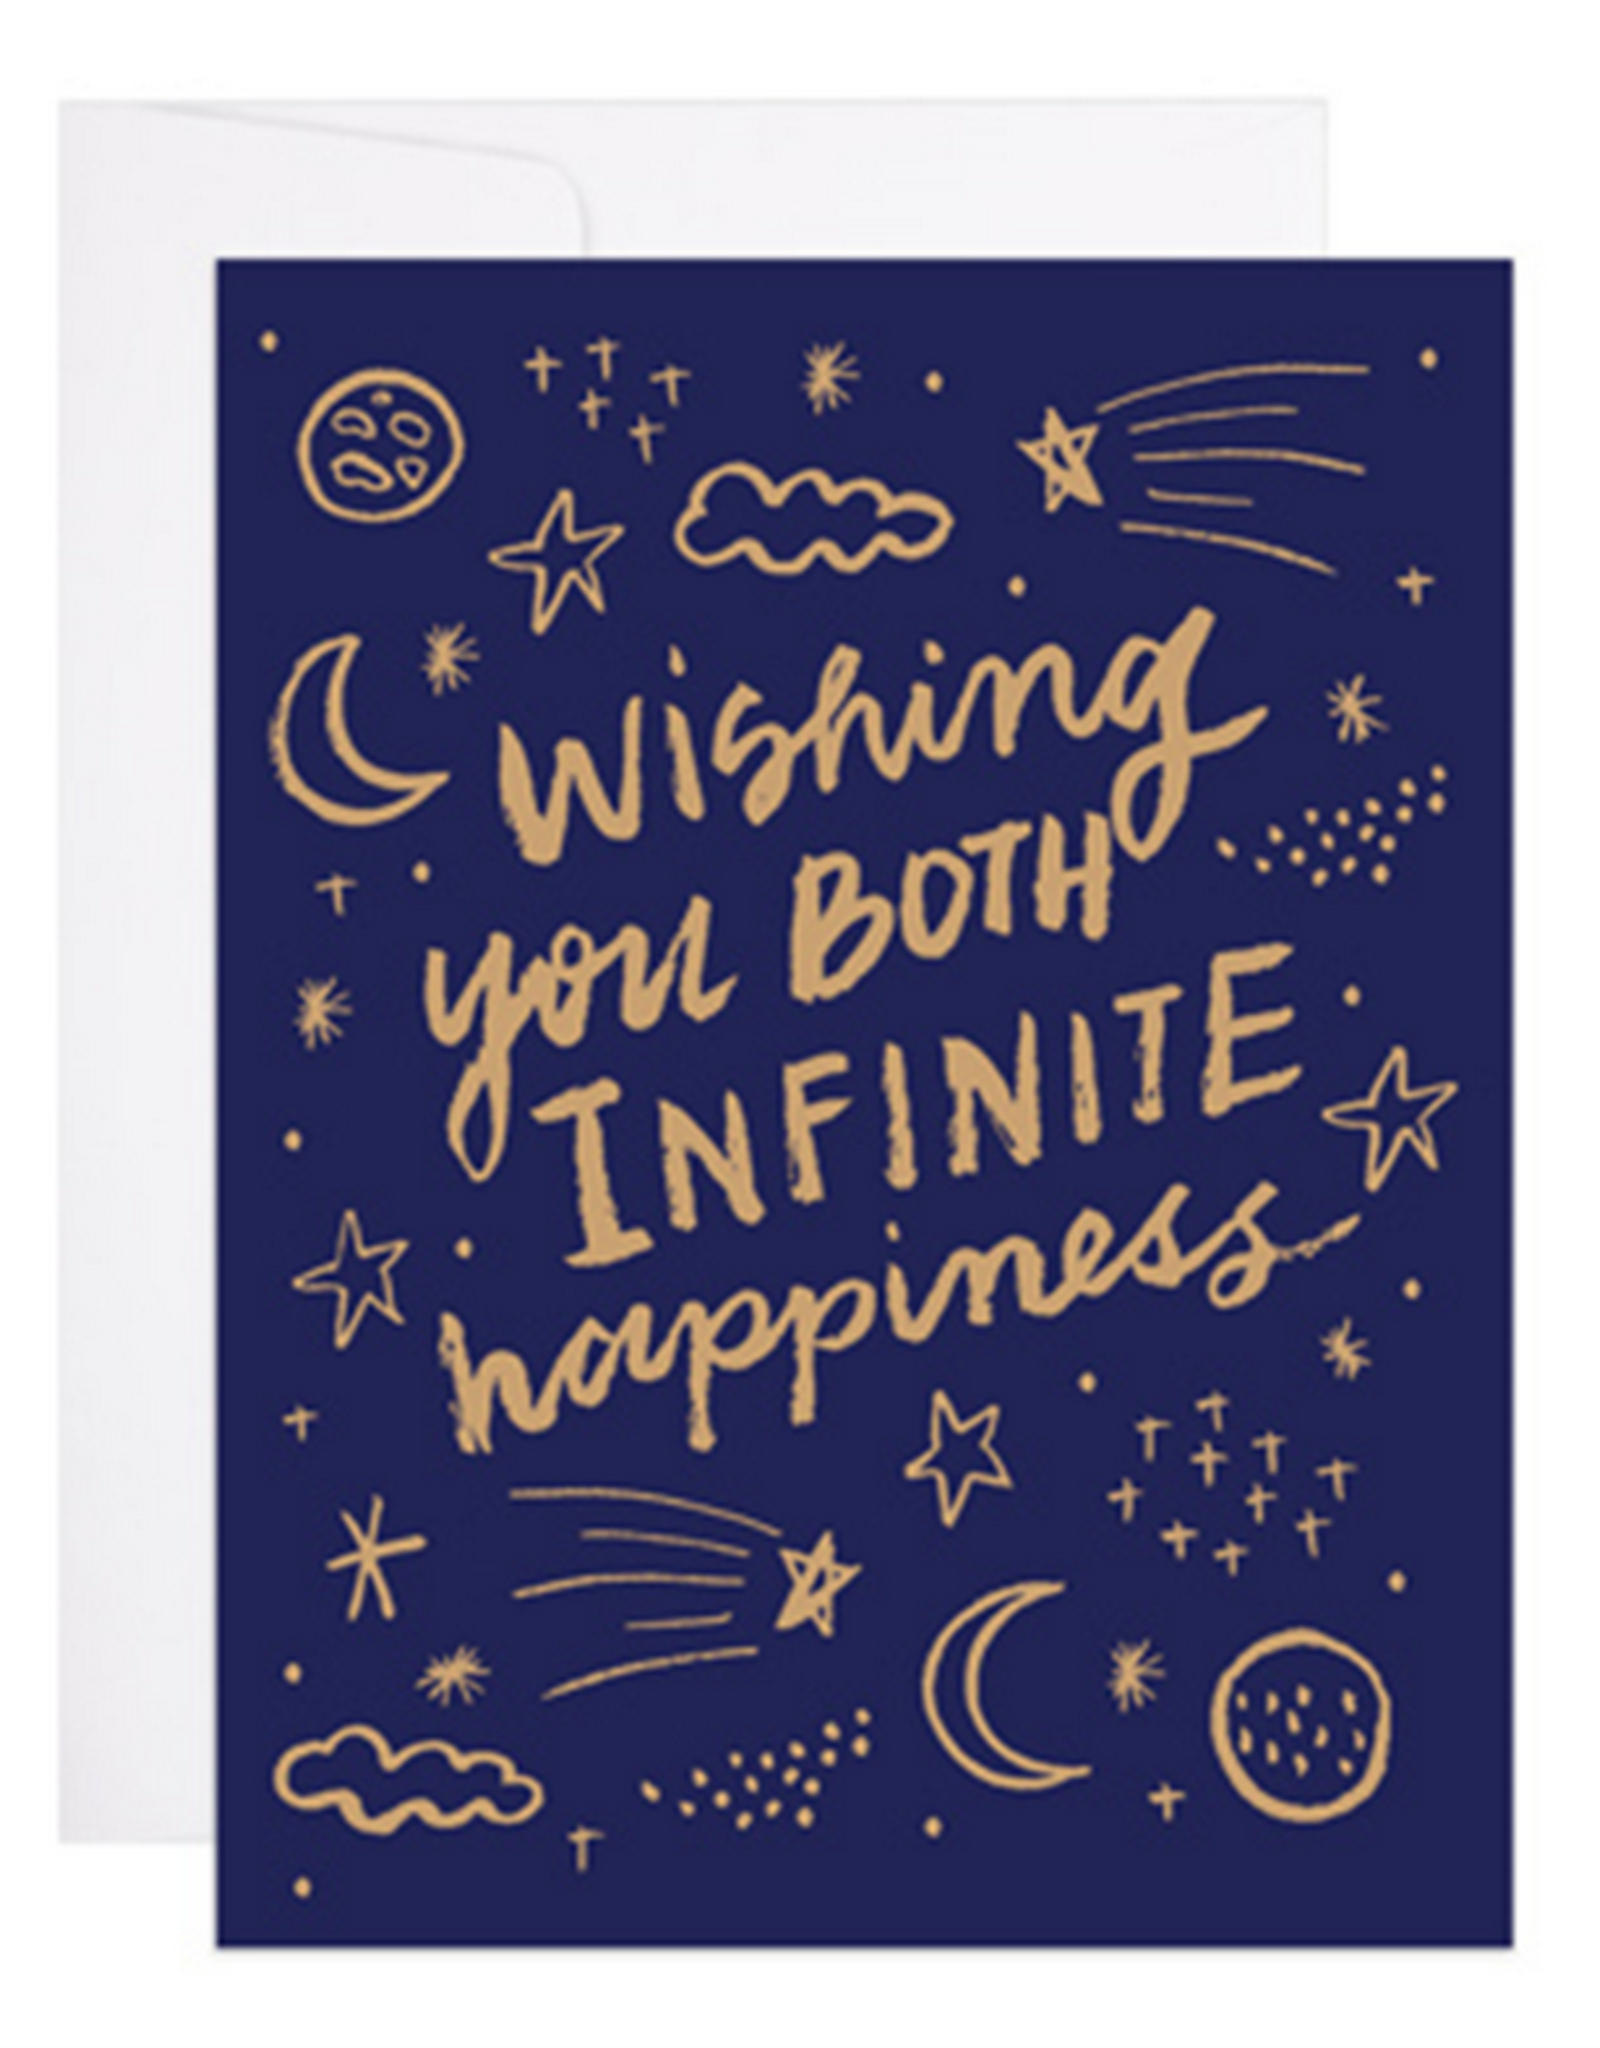 Wishing You Both Infinite Happiness Greeting Card